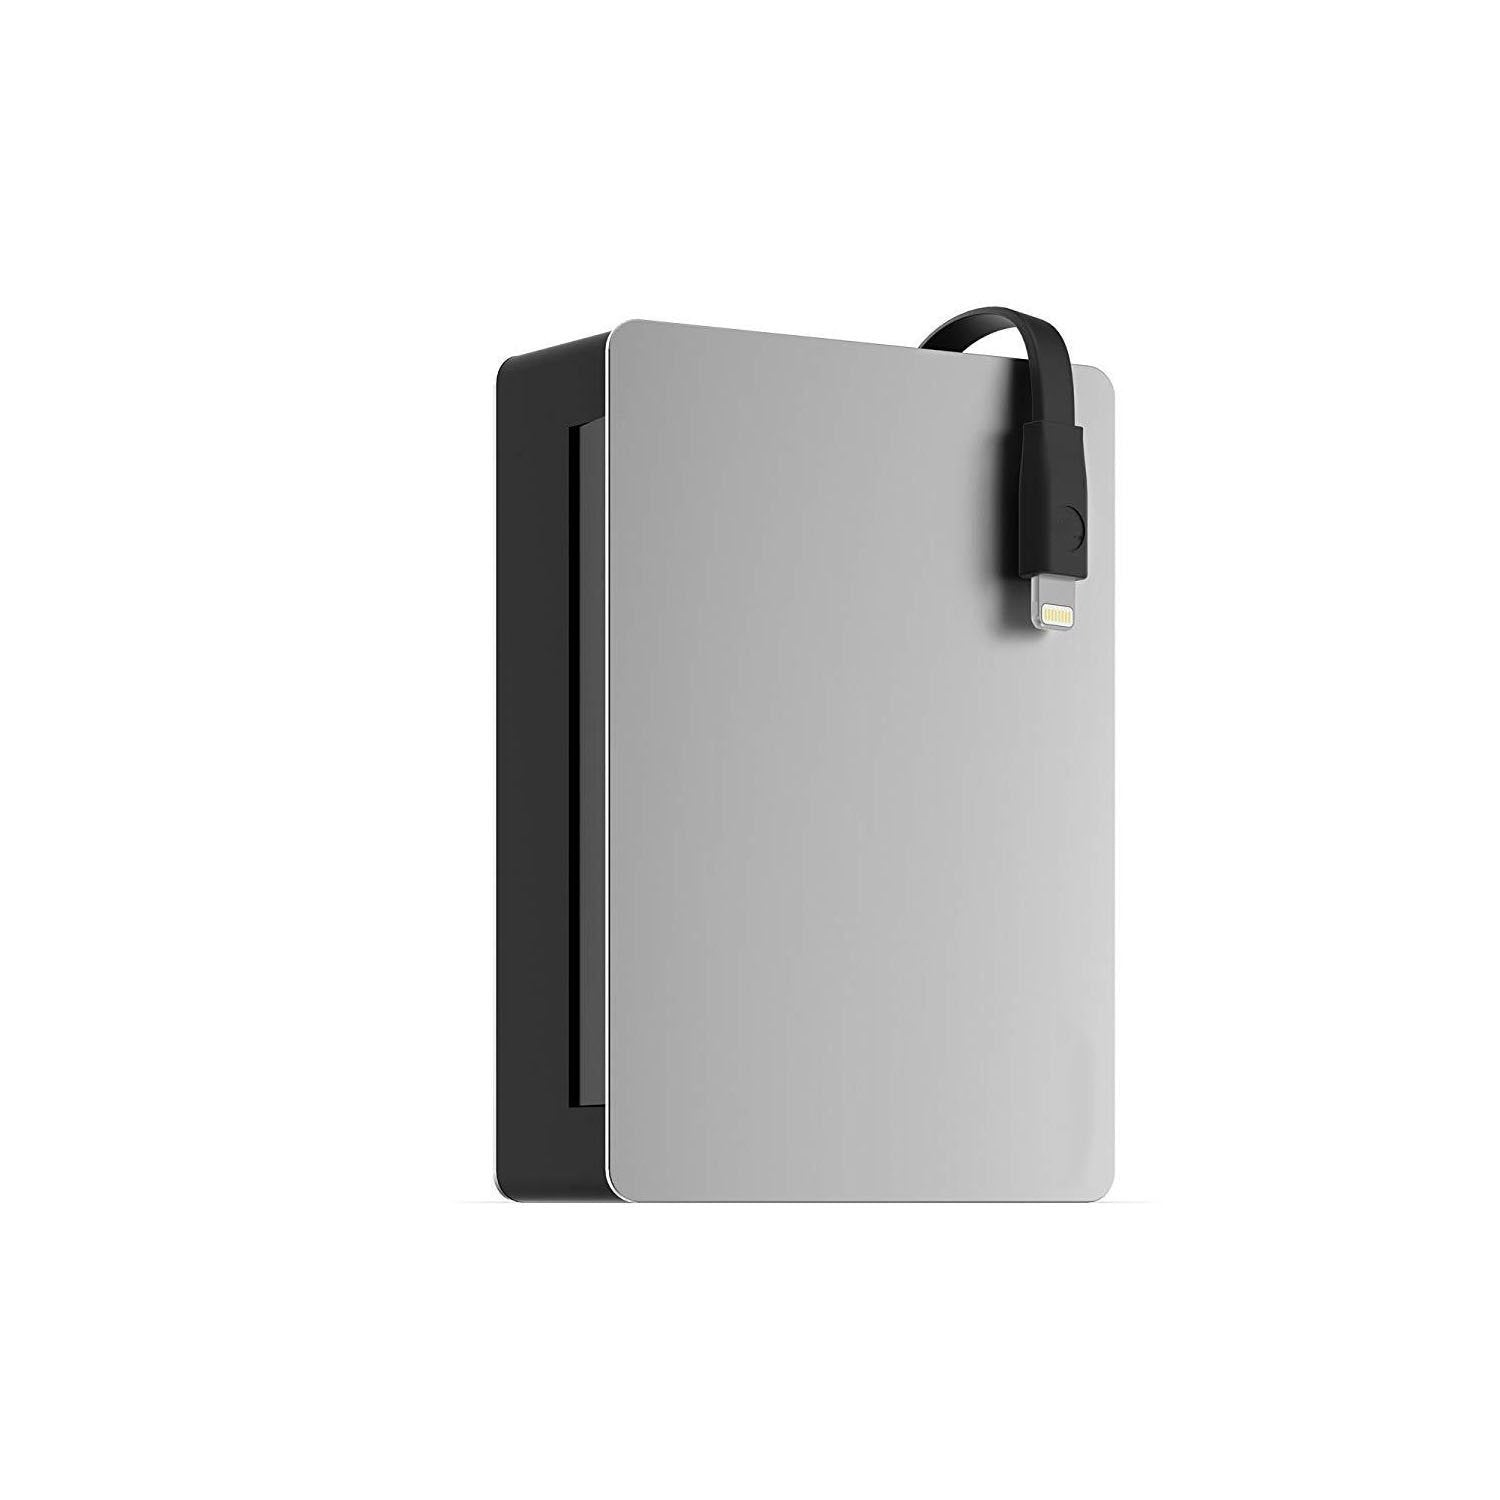 Portable Power Bank with Lightning Connector